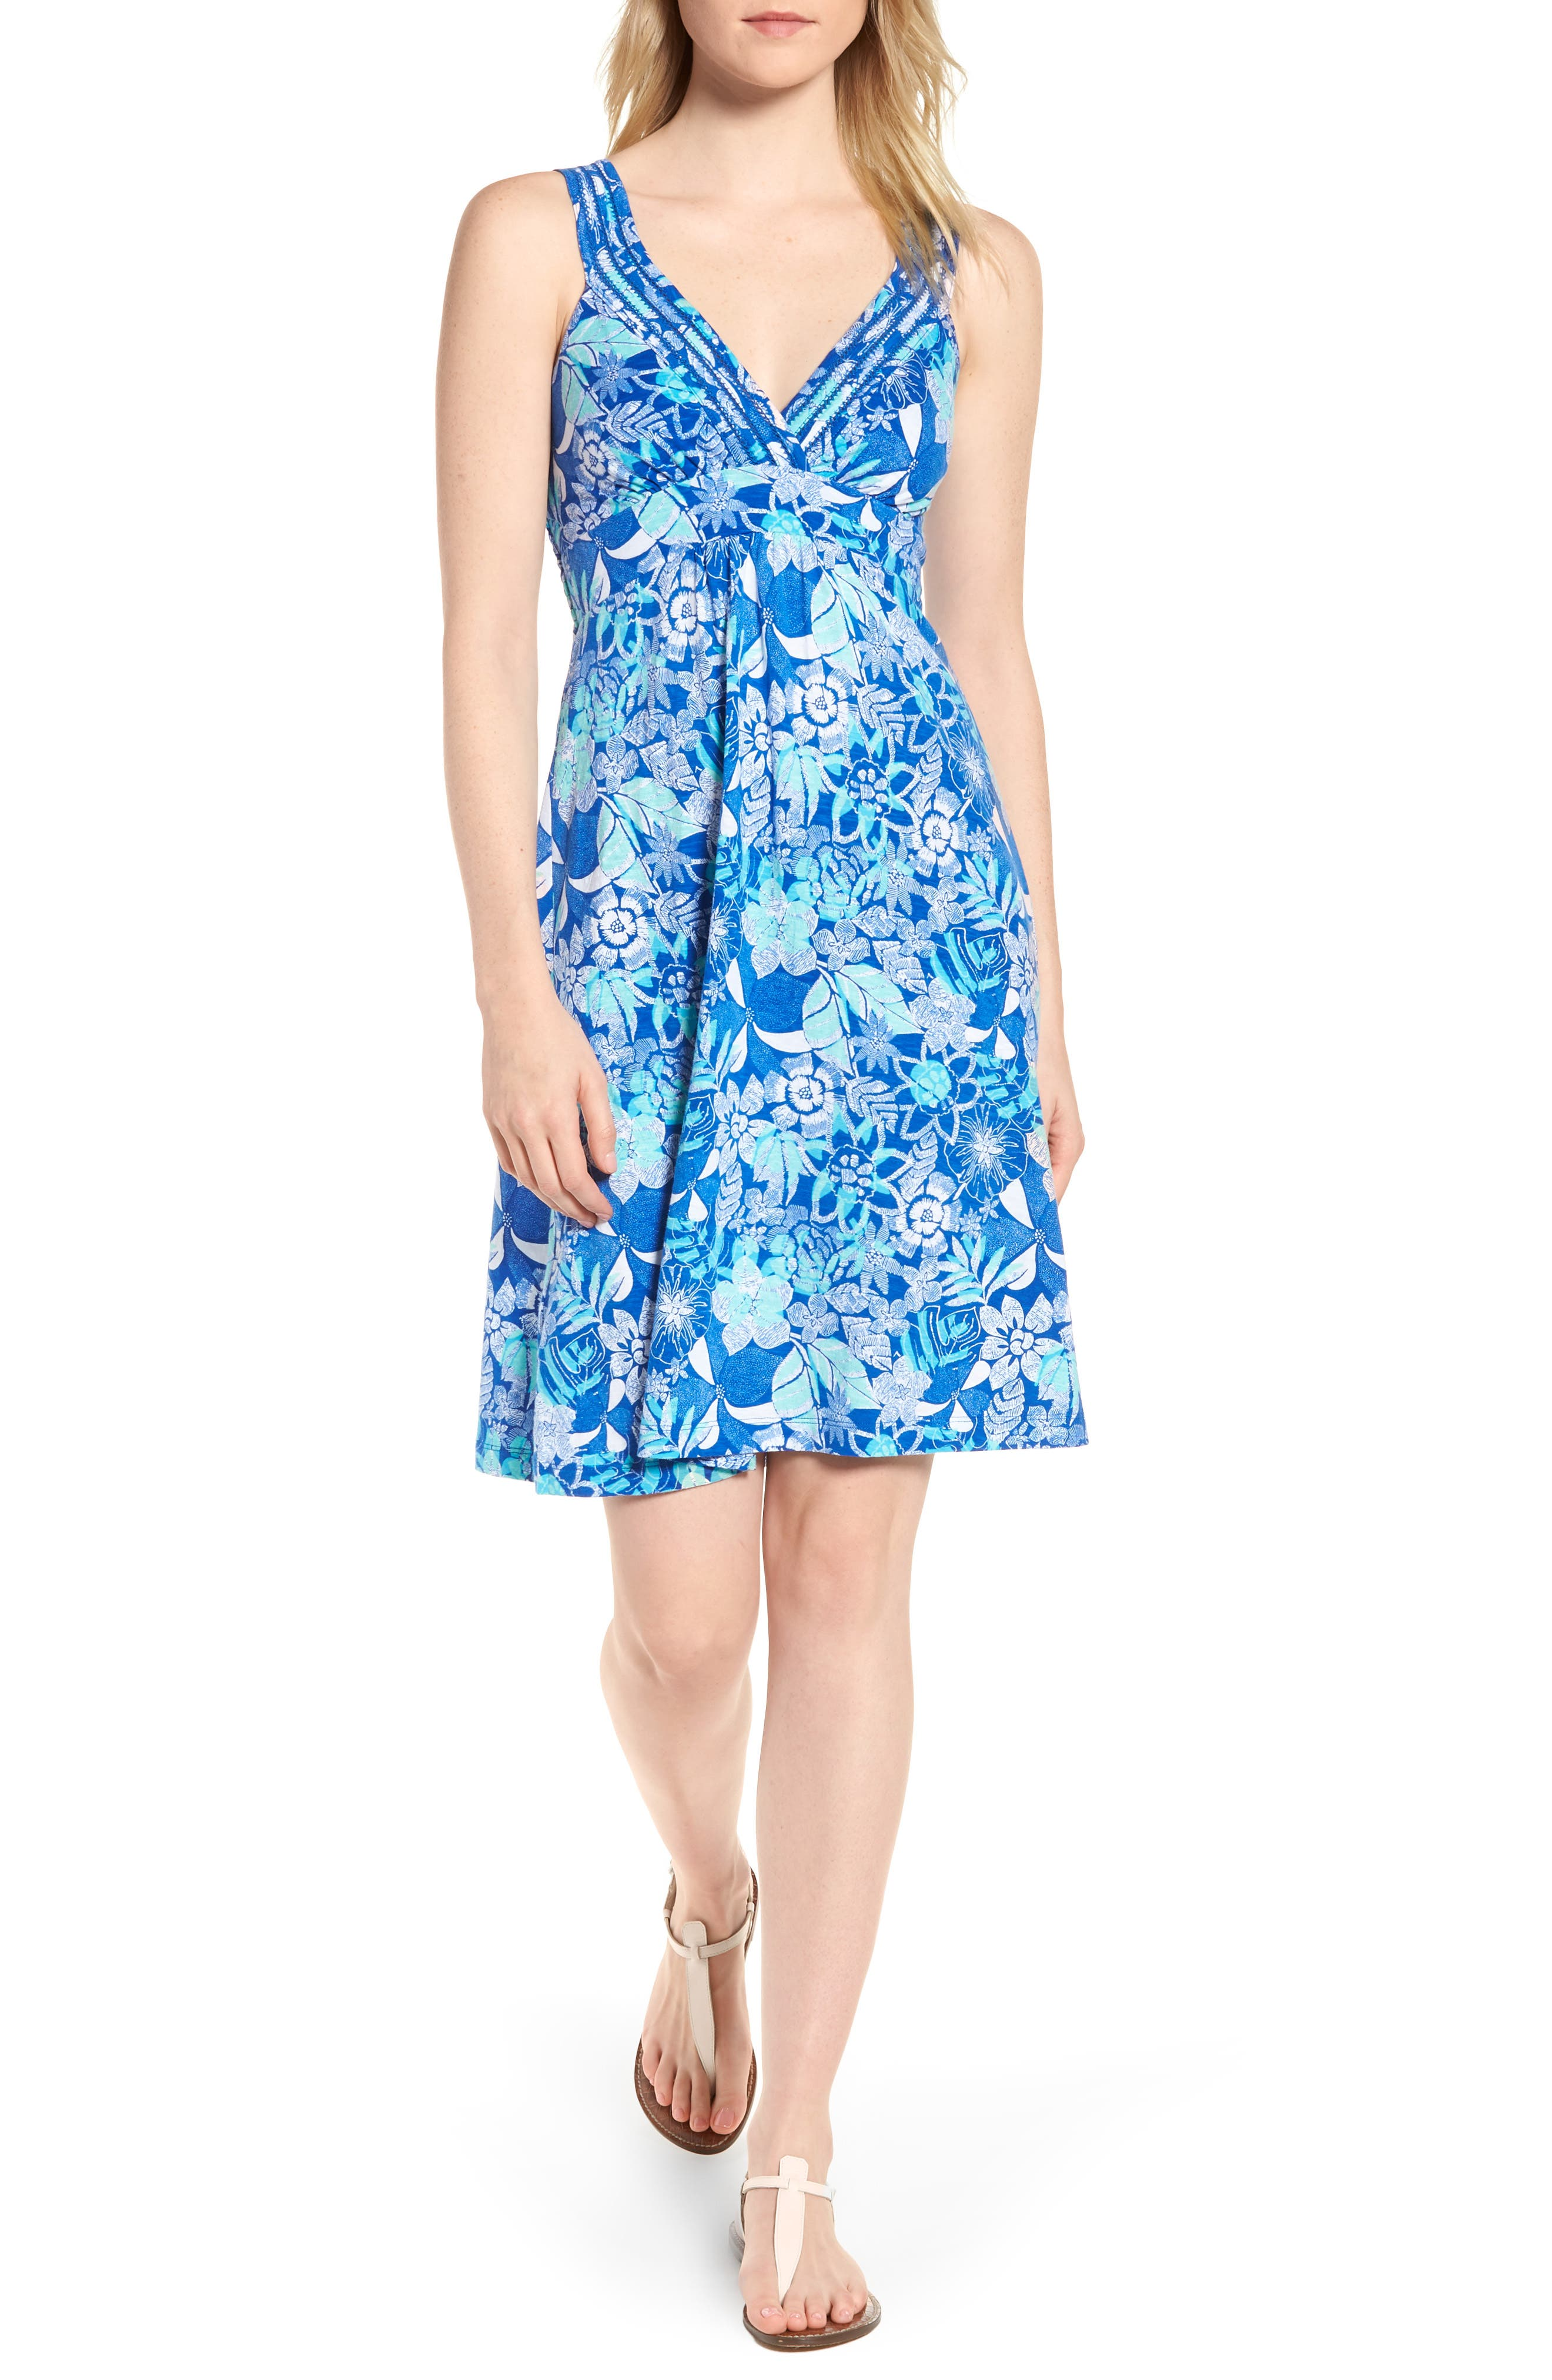 Alternate Image 1 Selected - Tommy Bahama Boardwalk Blooms A-Line Dress